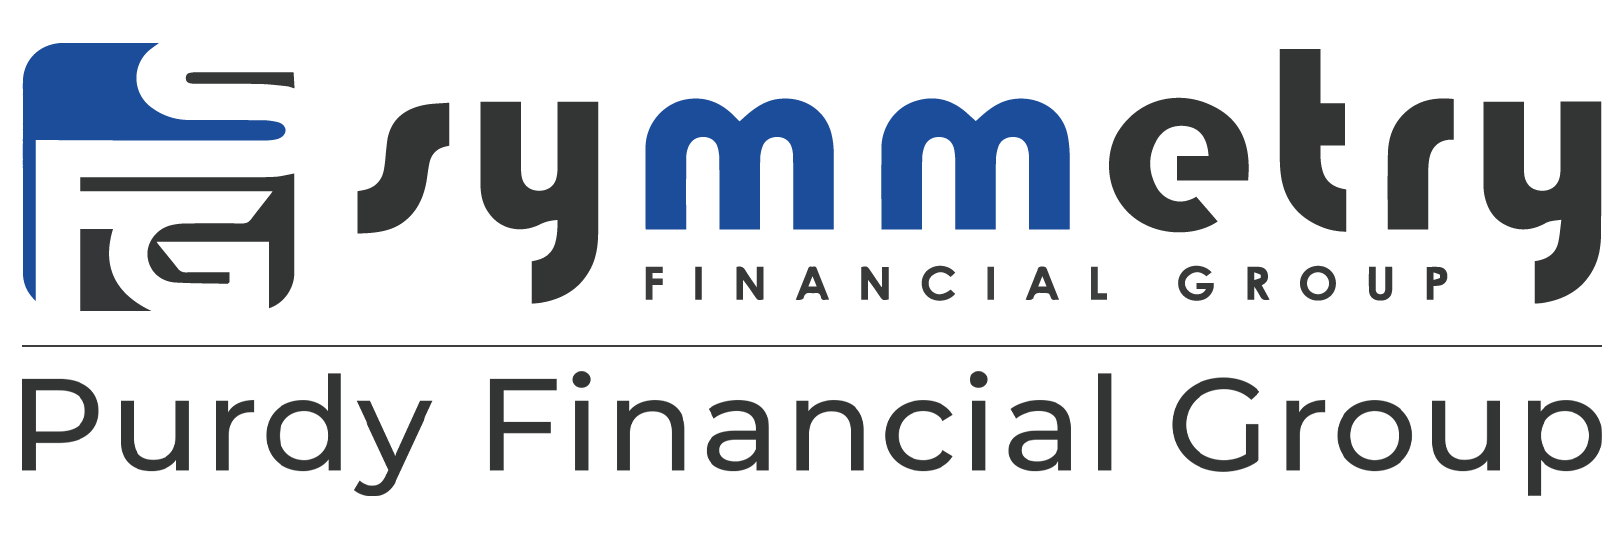 Purdy Financial Group's logo